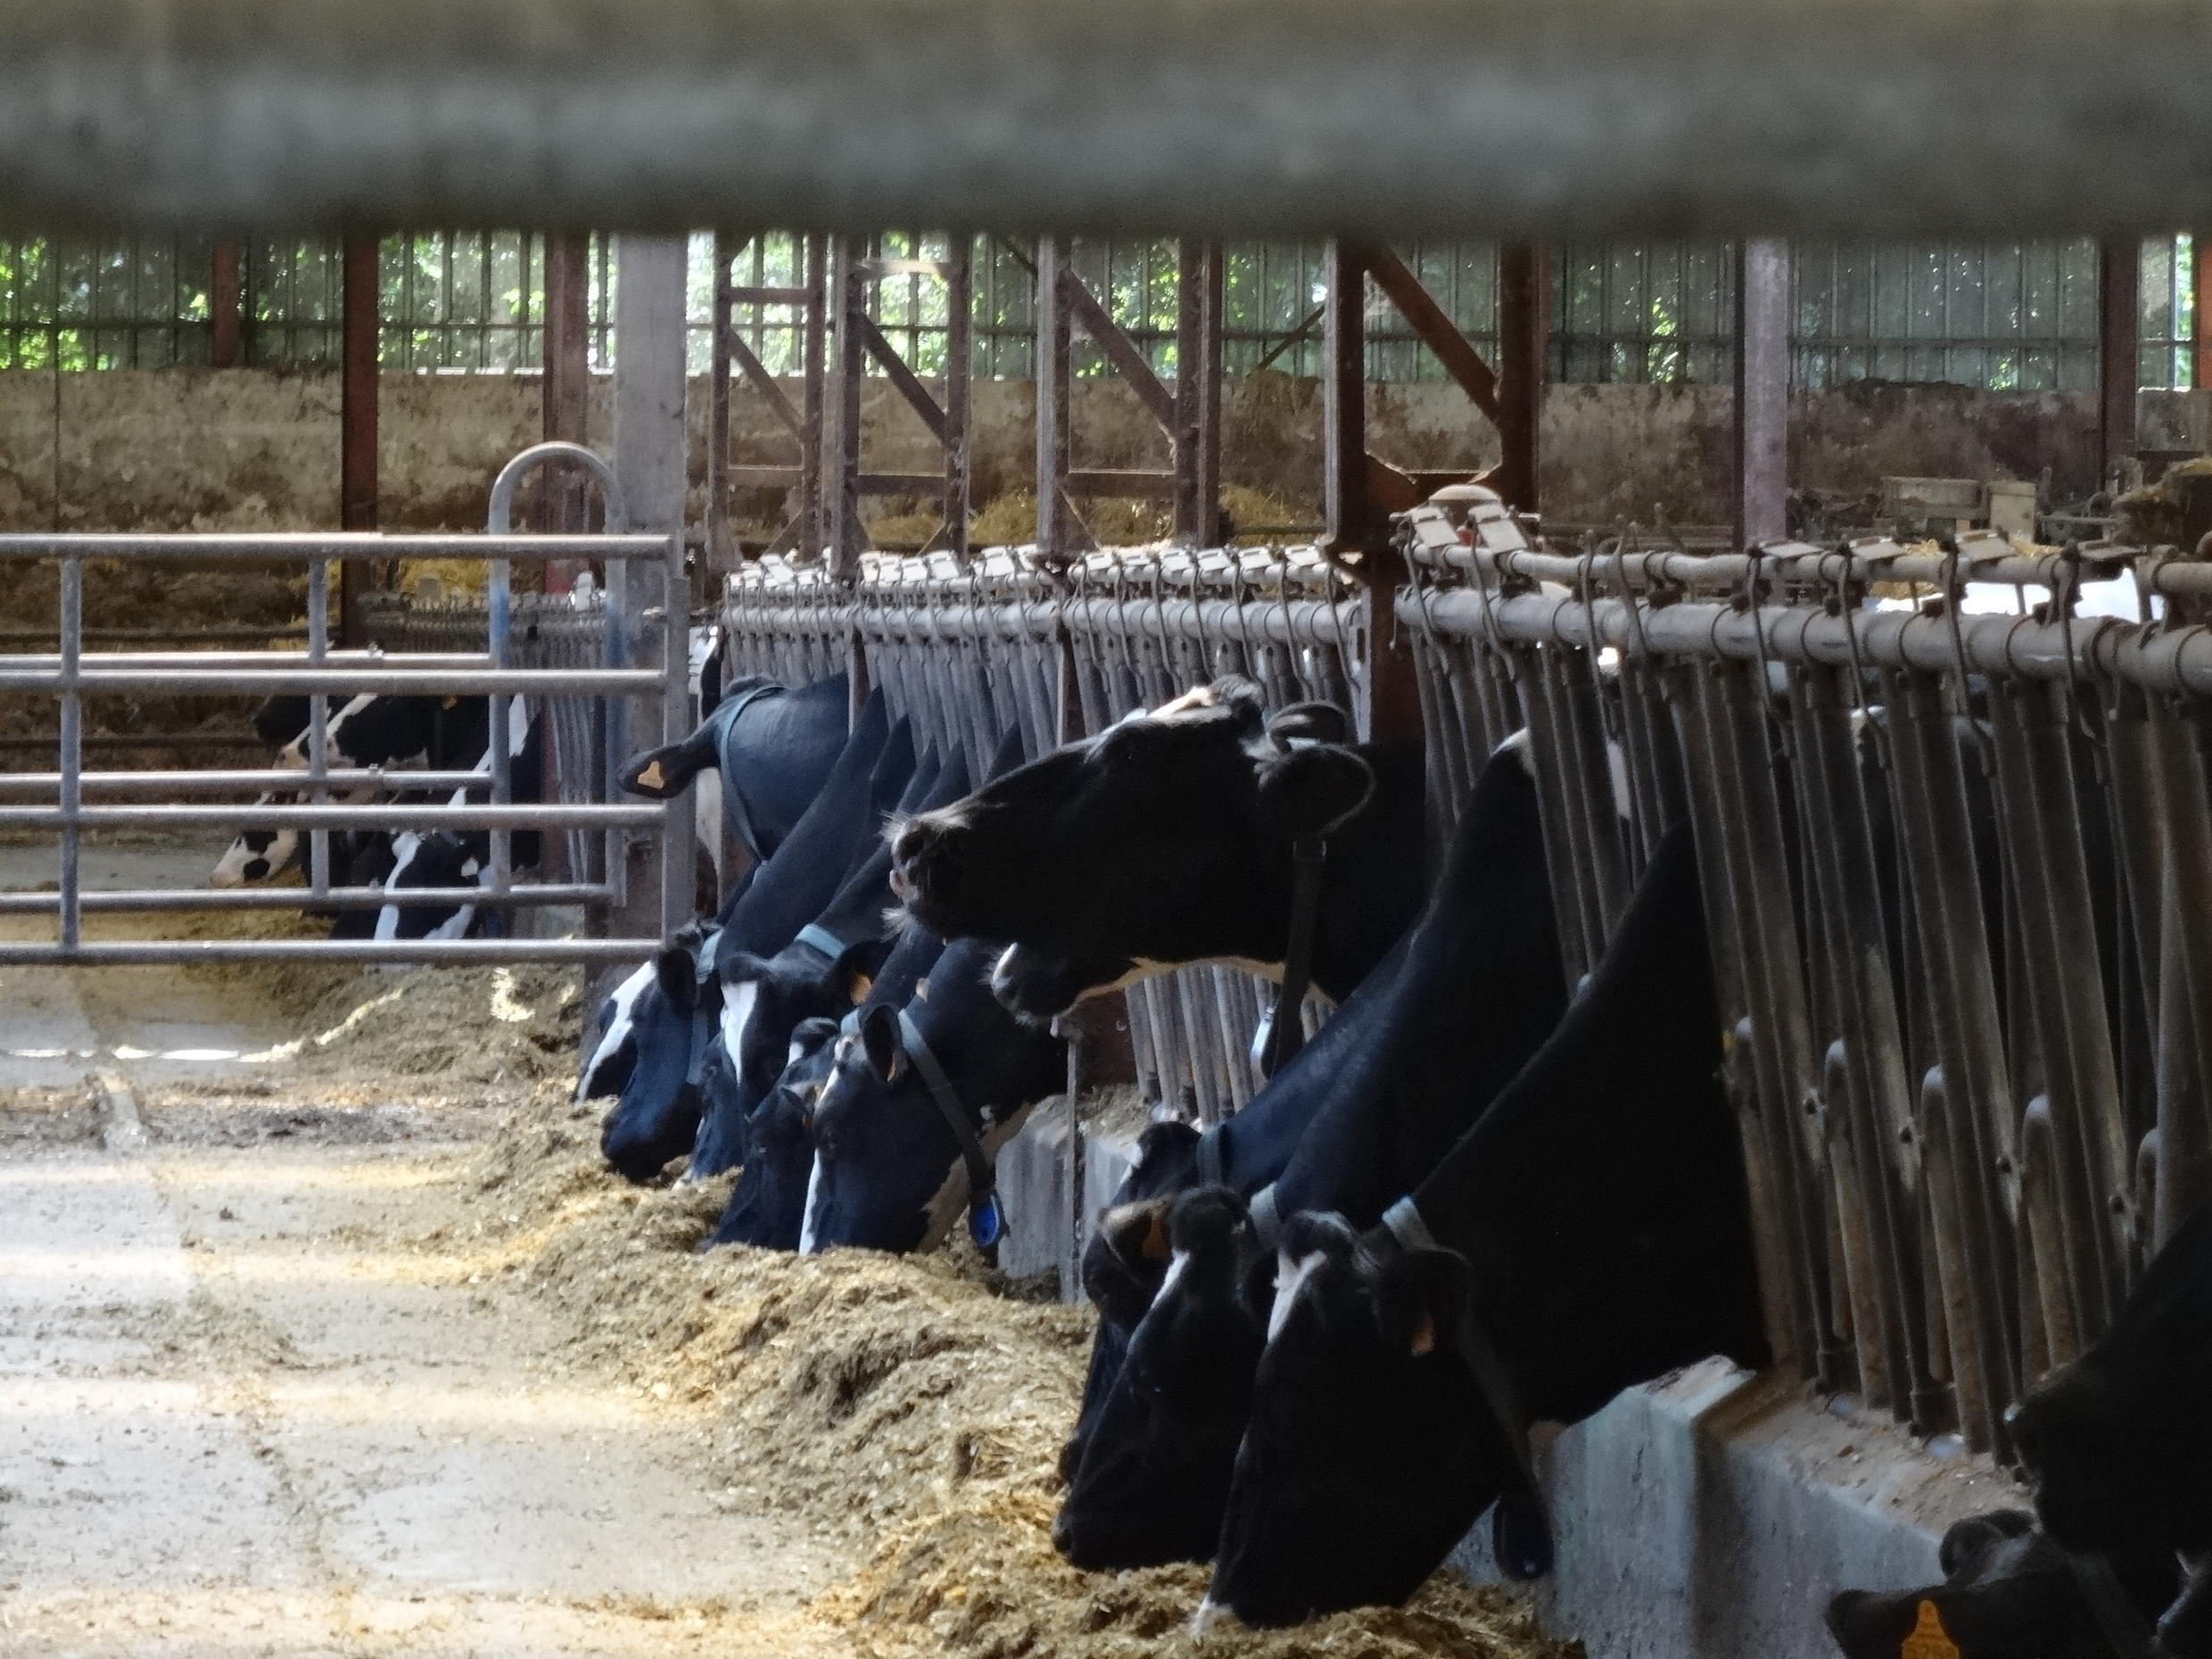 Cows at a dairy near the village of Drucat, down the road from the 1,000-cow farm